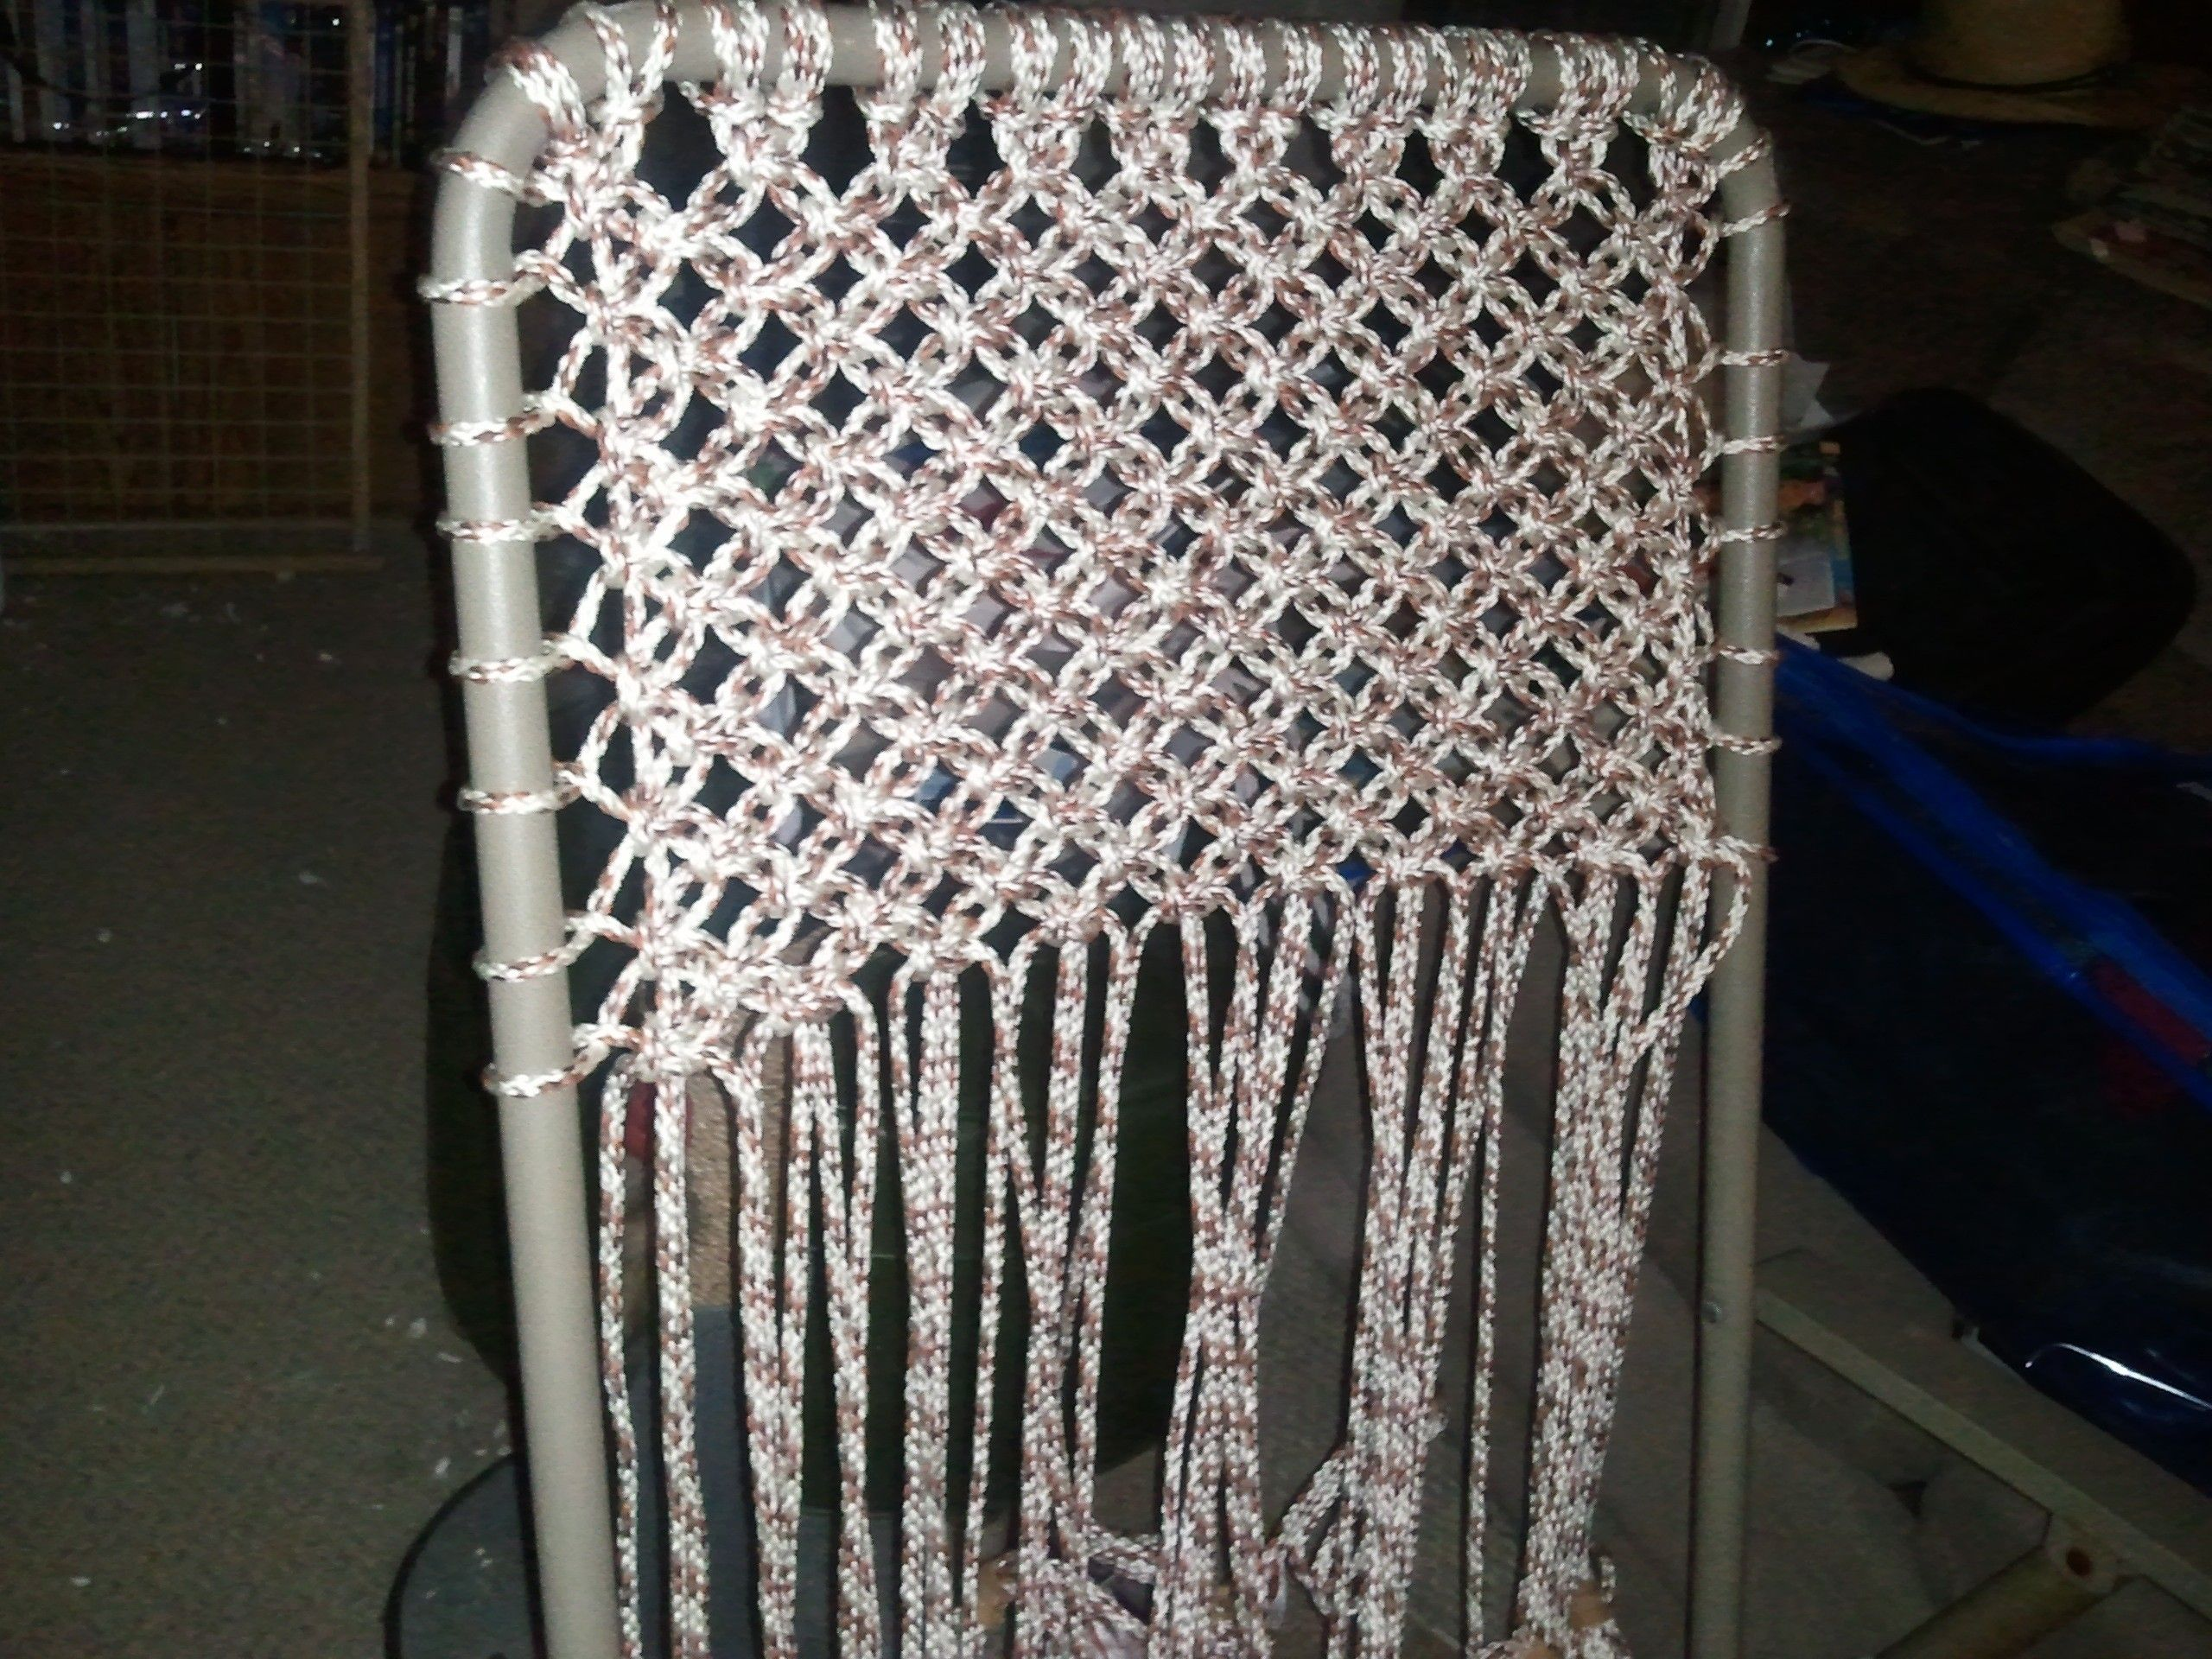 macrame lawn chair patterns macrame lawn chair alternating square knots couldn t 9479